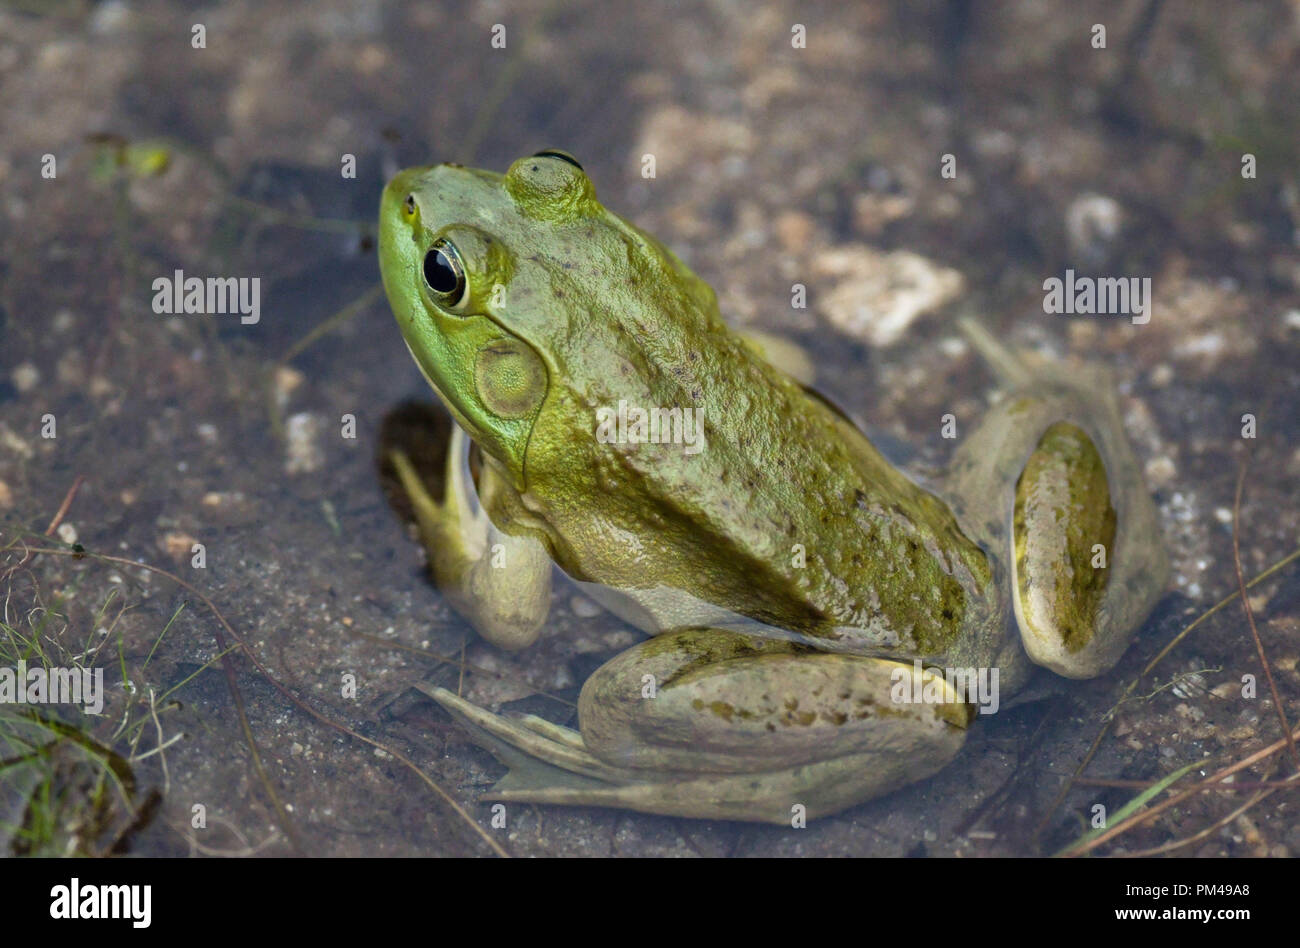 A green frog sits in a pond in September in New Hampshire, USA. - Stock Image